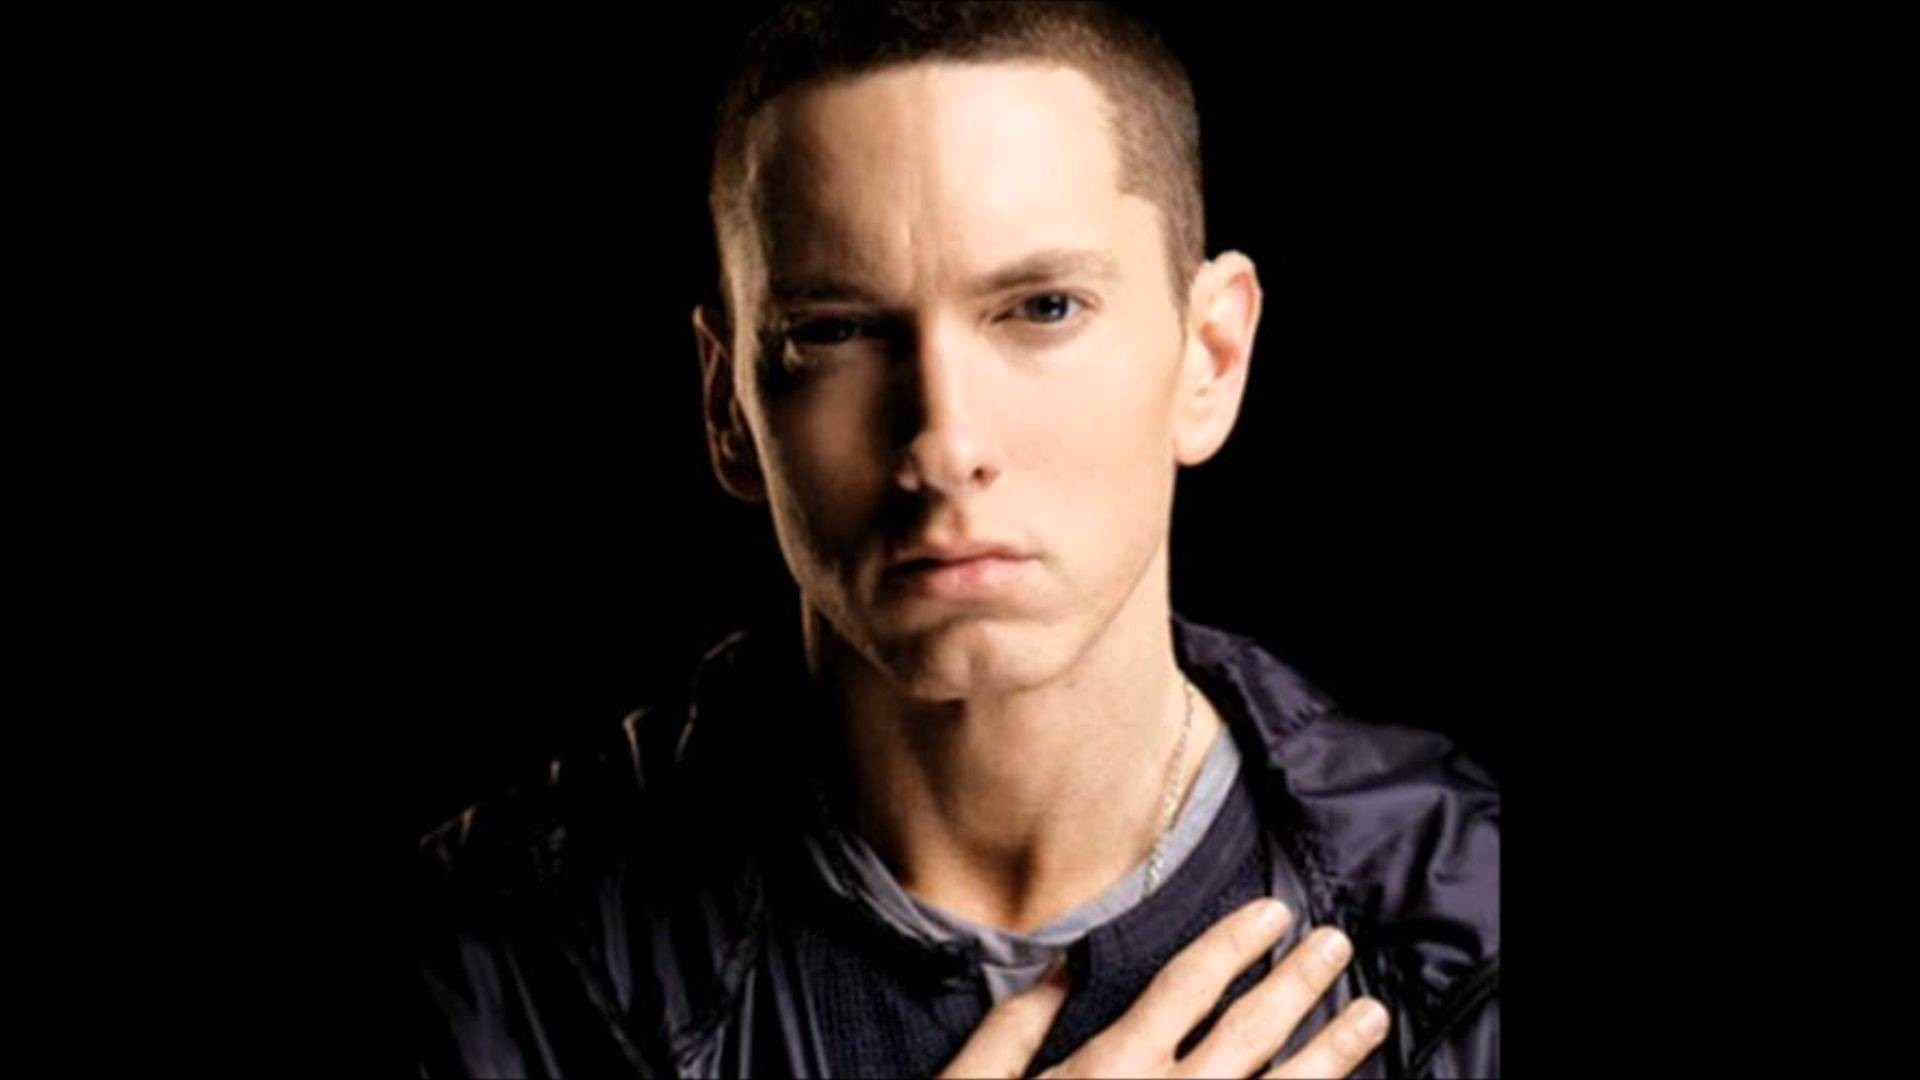 1920x1080 Eminem | Wallpapers HD free Download